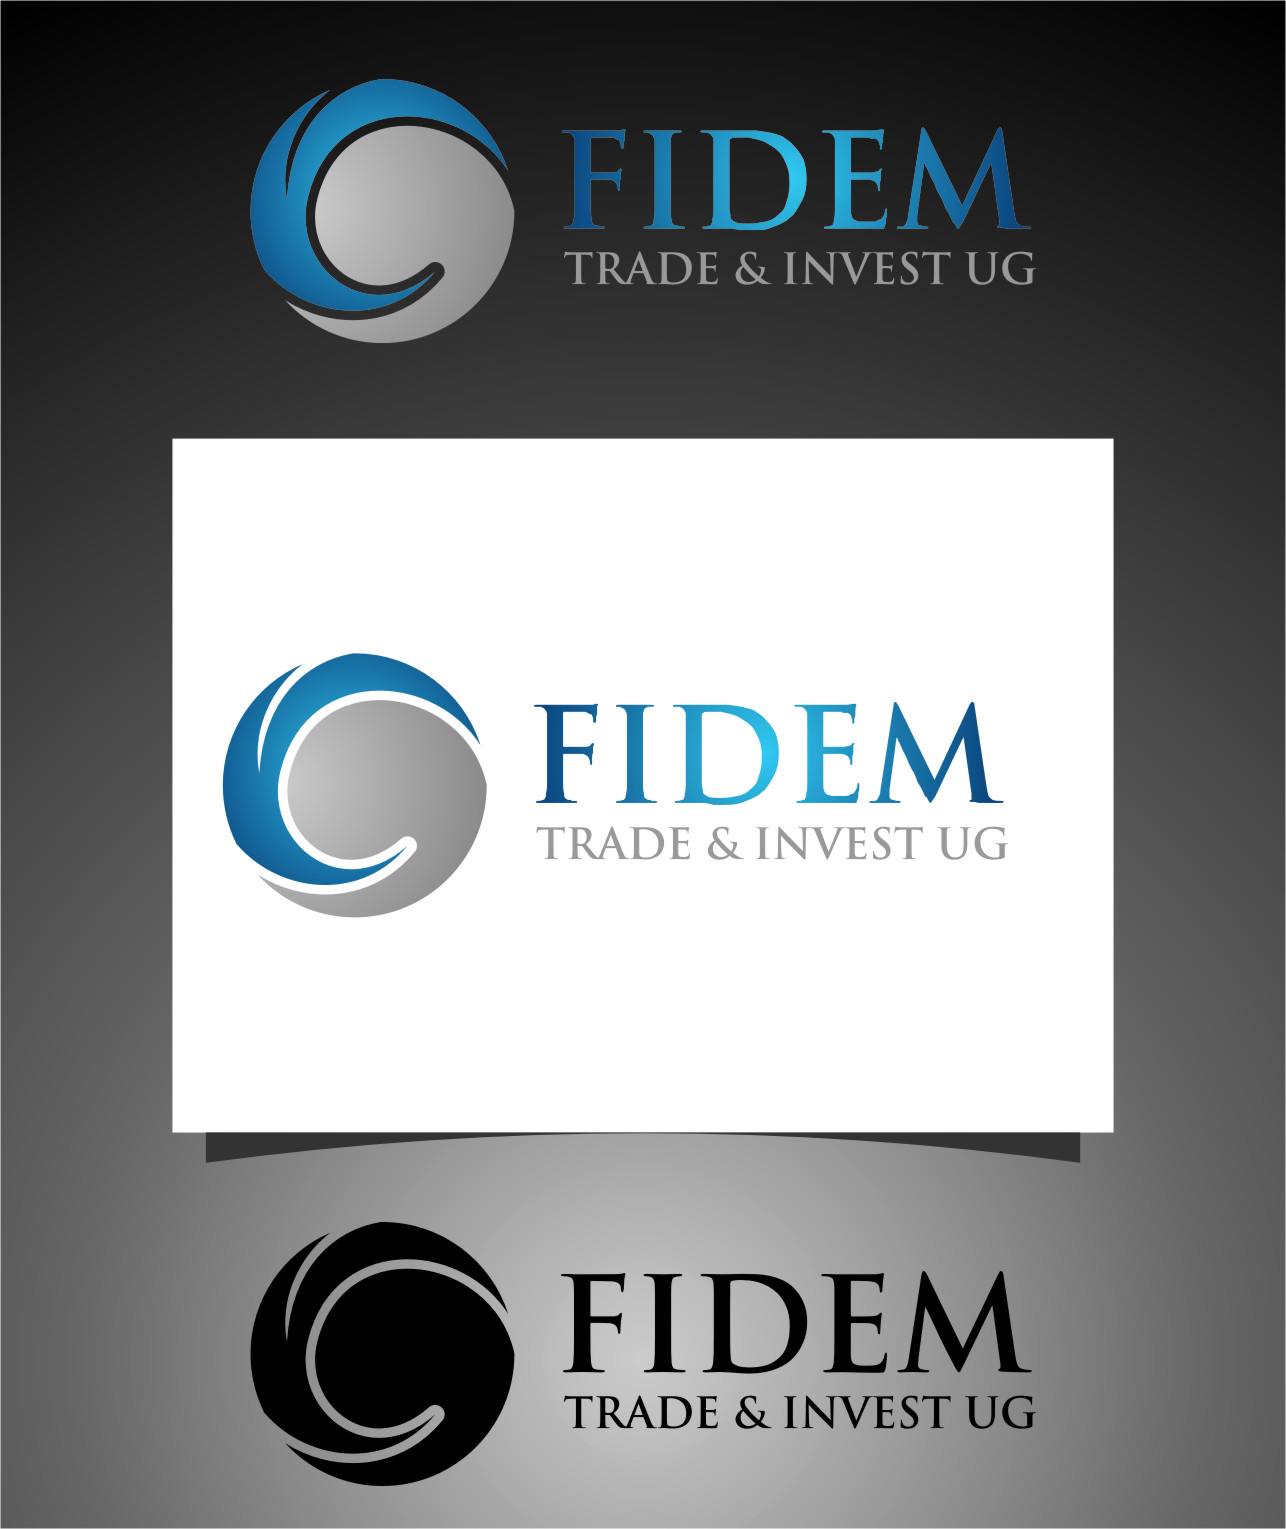 Logo Design by Ngepet_art - Entry No. 307 in the Logo Design Contest Professional Logo Design for FIDEM Trade & Invest UG.